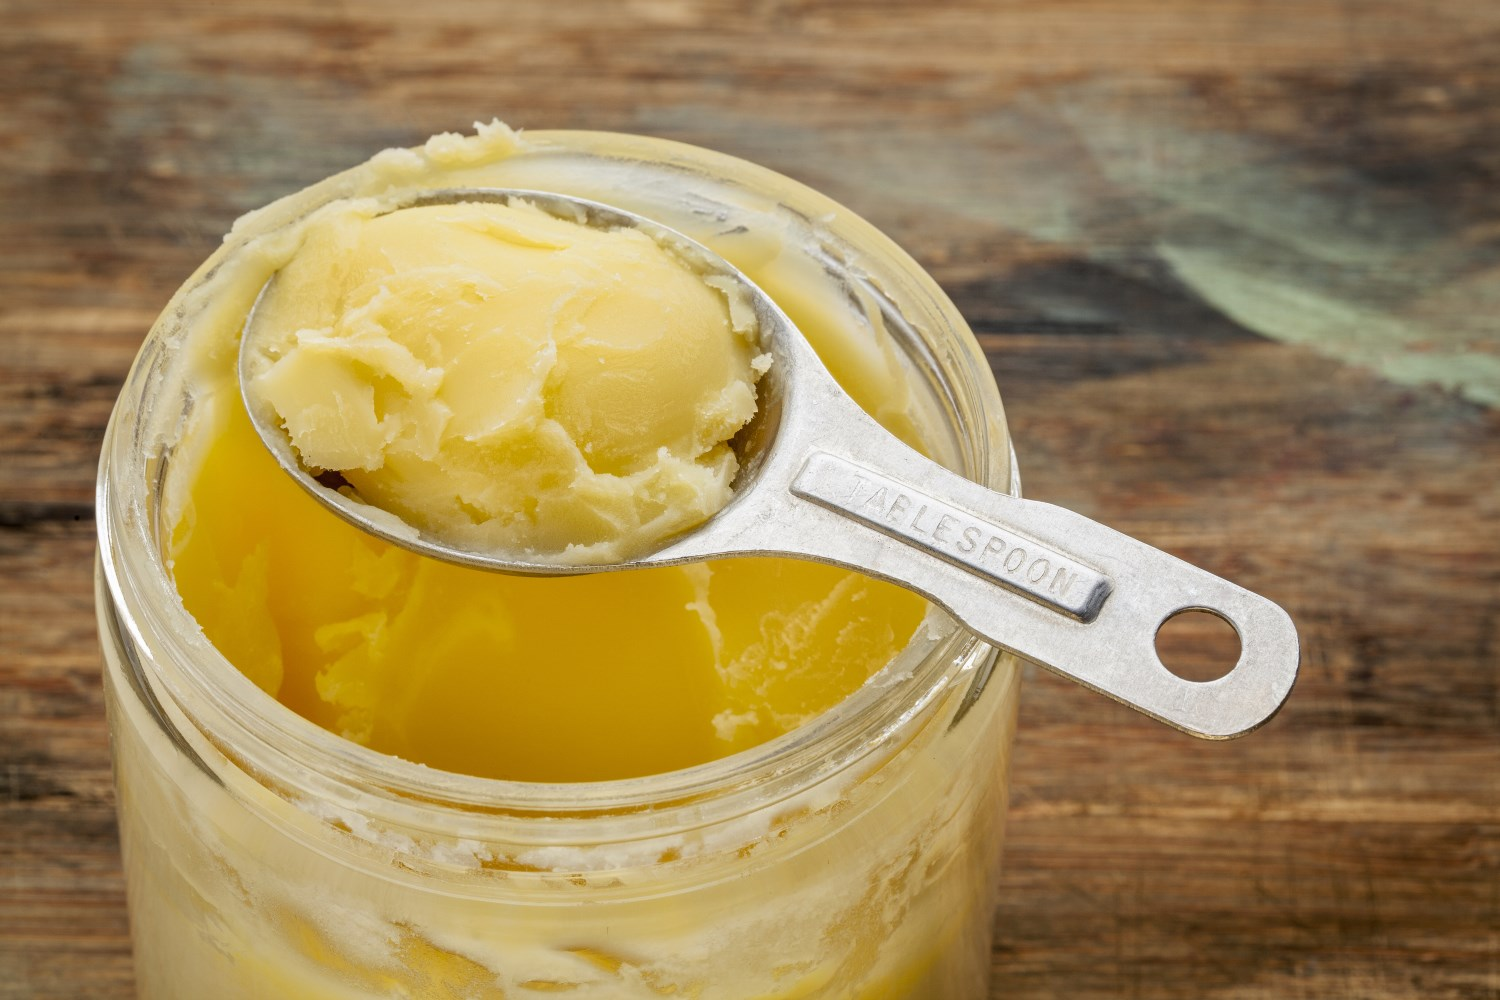 jar and measuring tablespoon of ghee - clarified butter